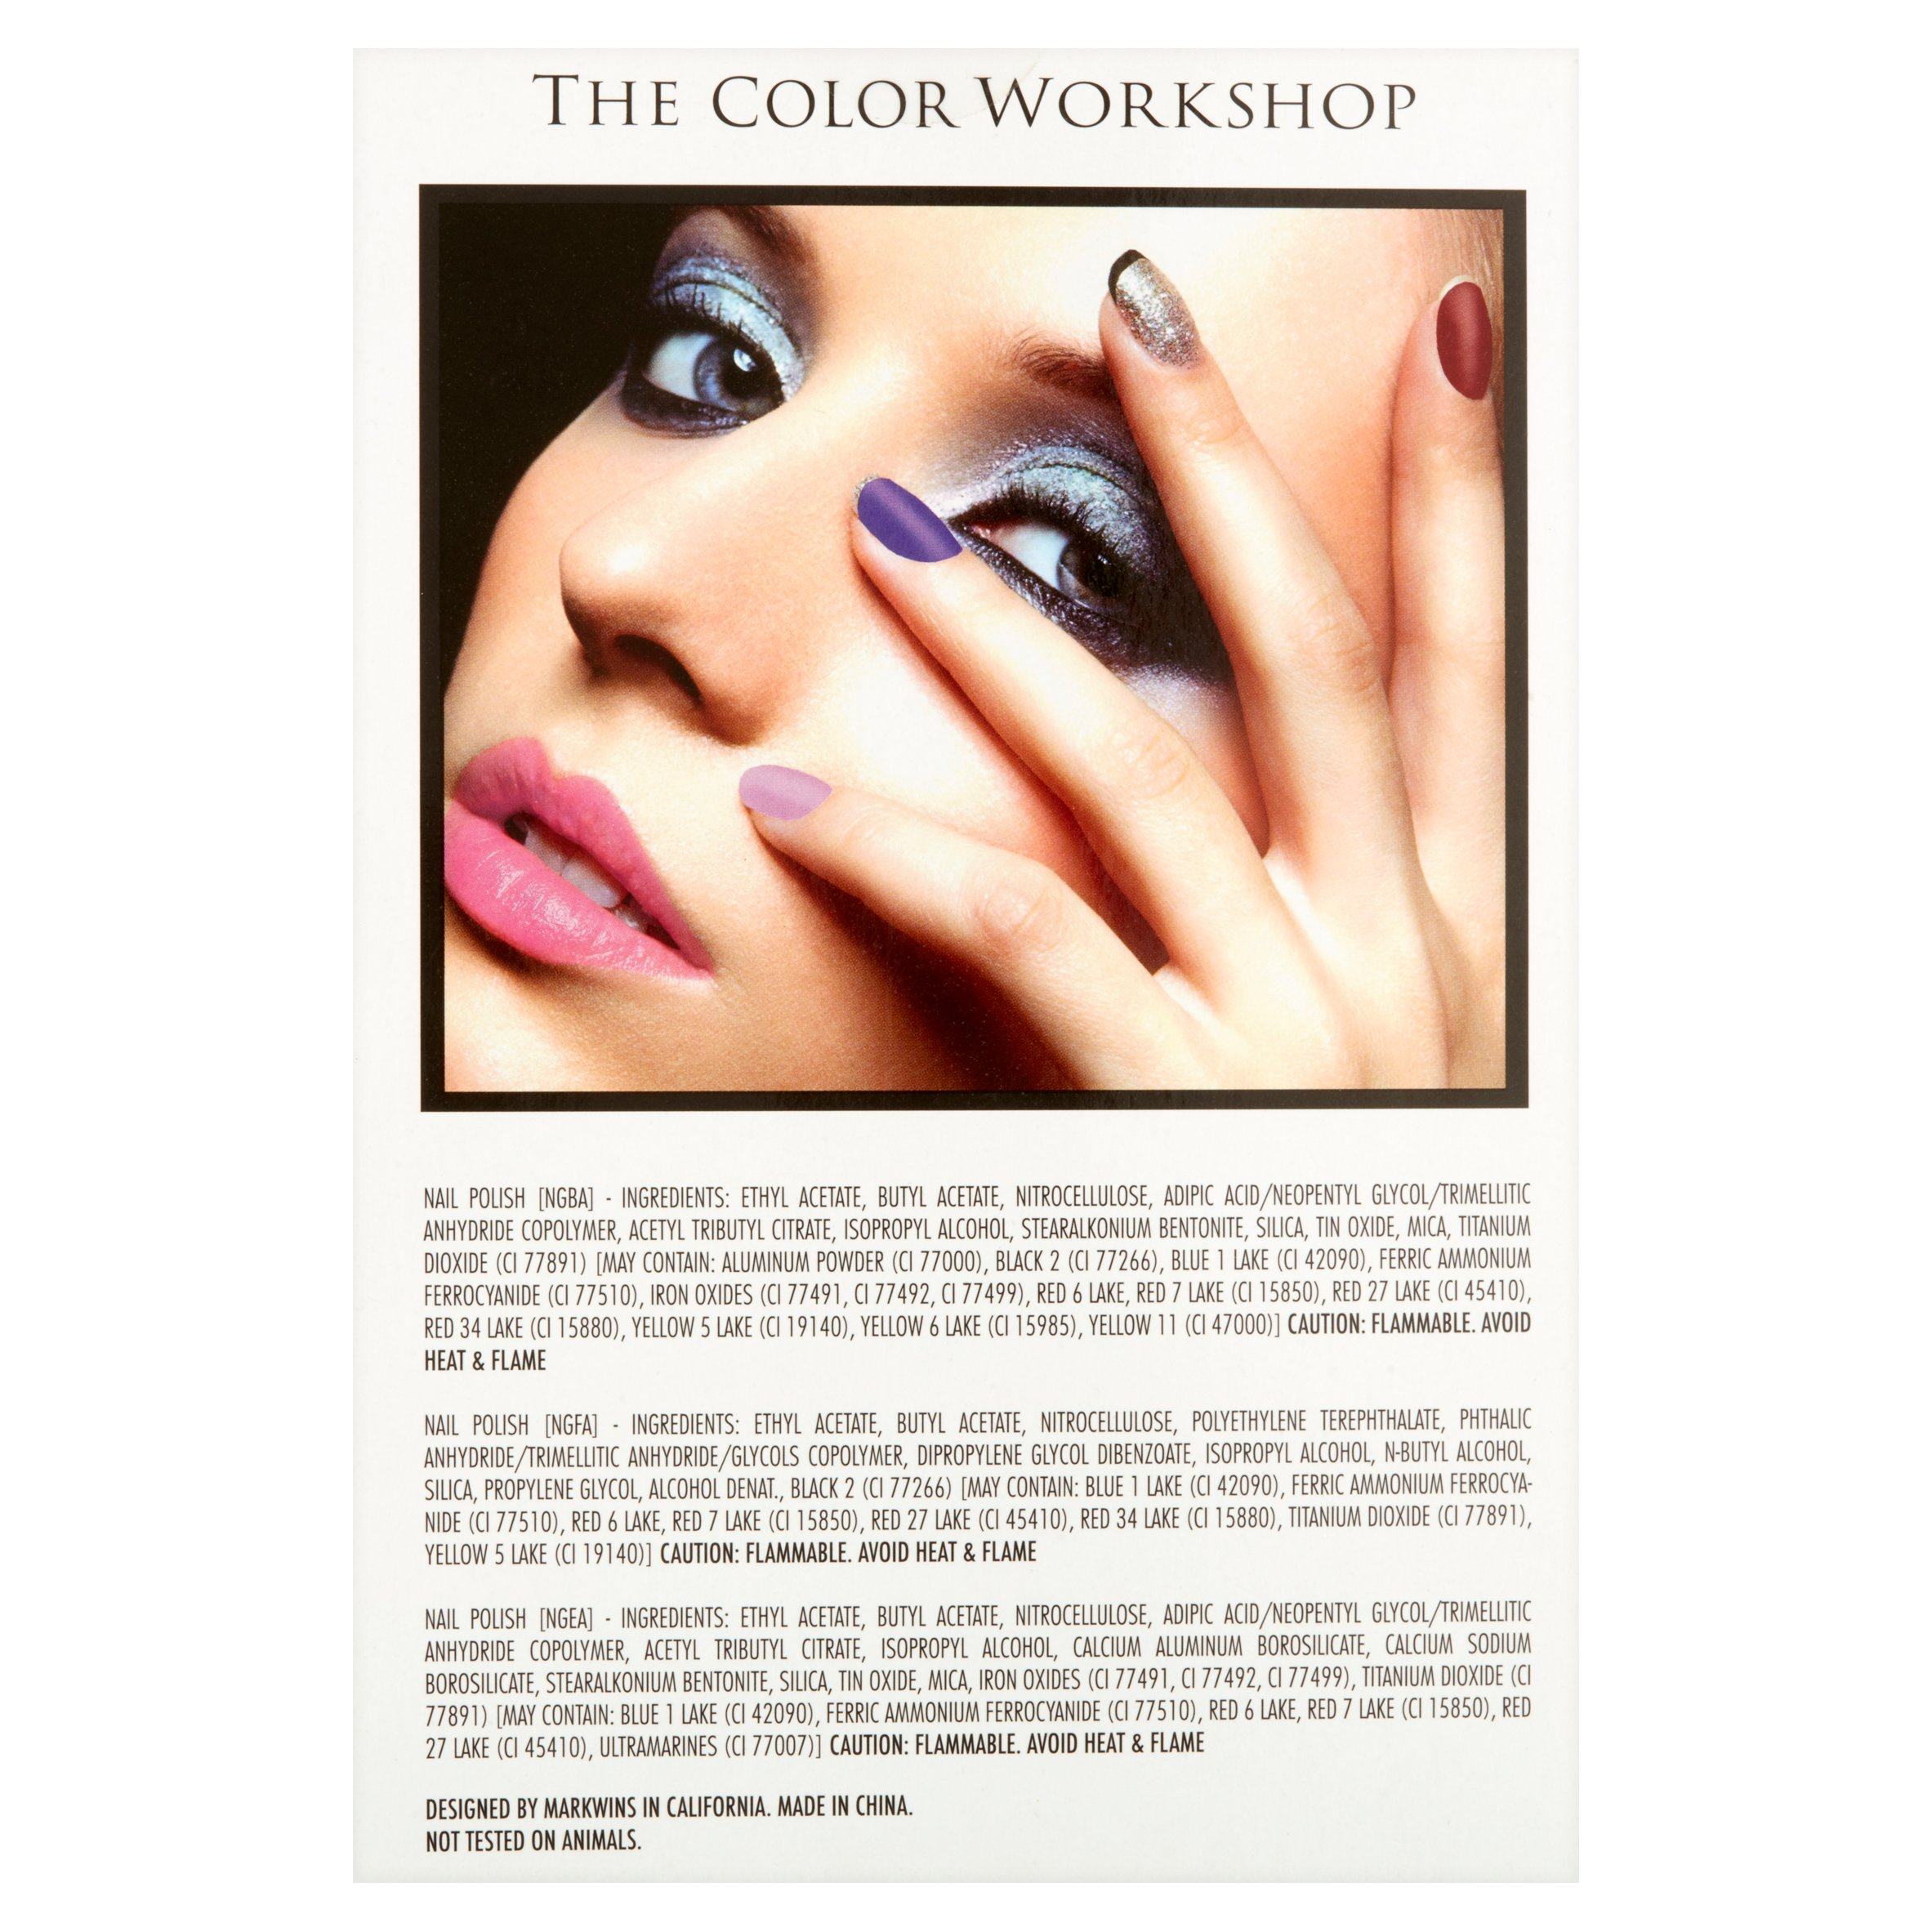 The Color Workshop Nail Polishes, 12 count, 1.06 fl oz - Walmart.com